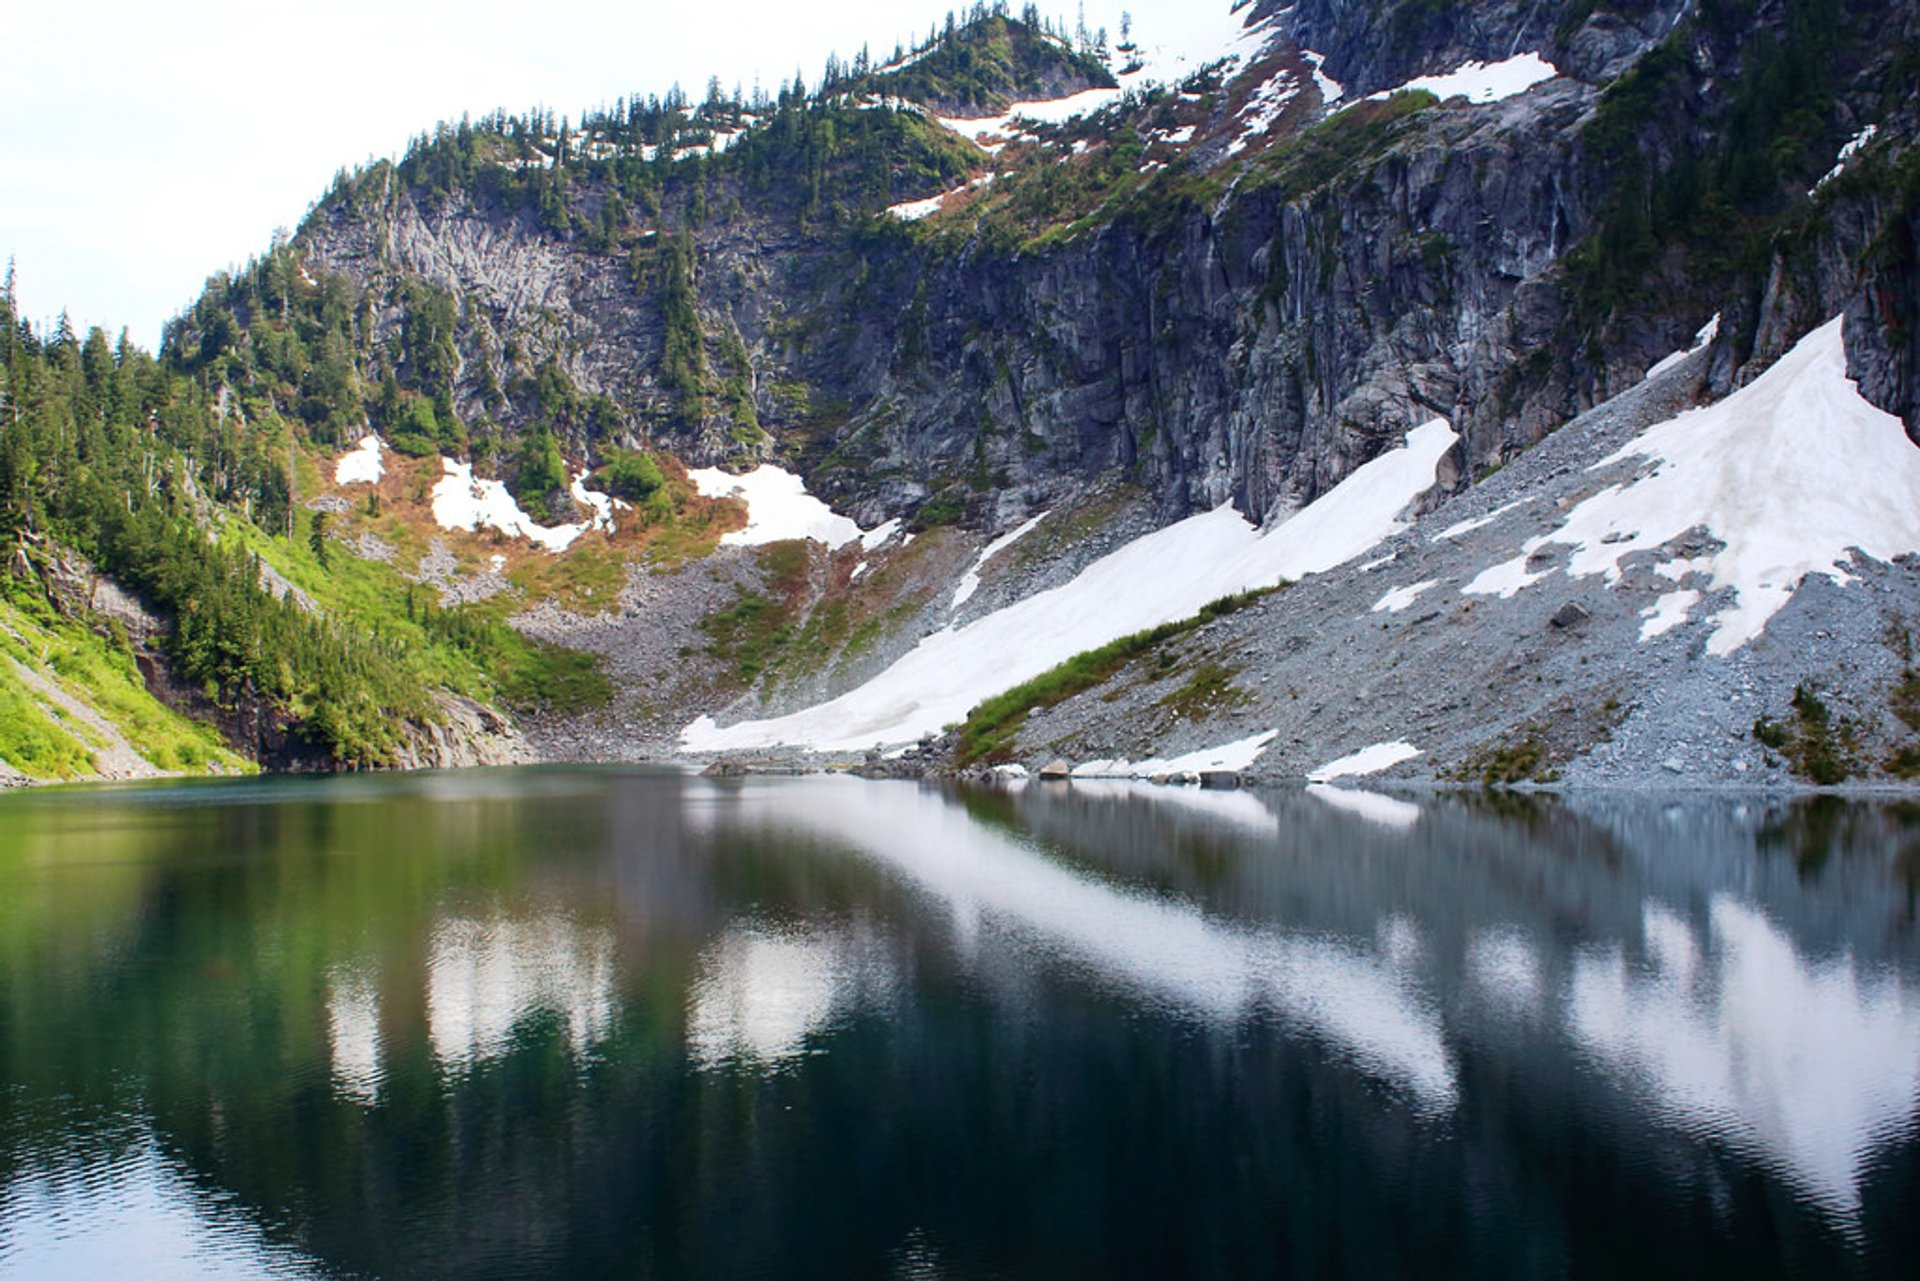 Lake Serene & Bridal Veil Falls in Seattle 2020 - Best Time